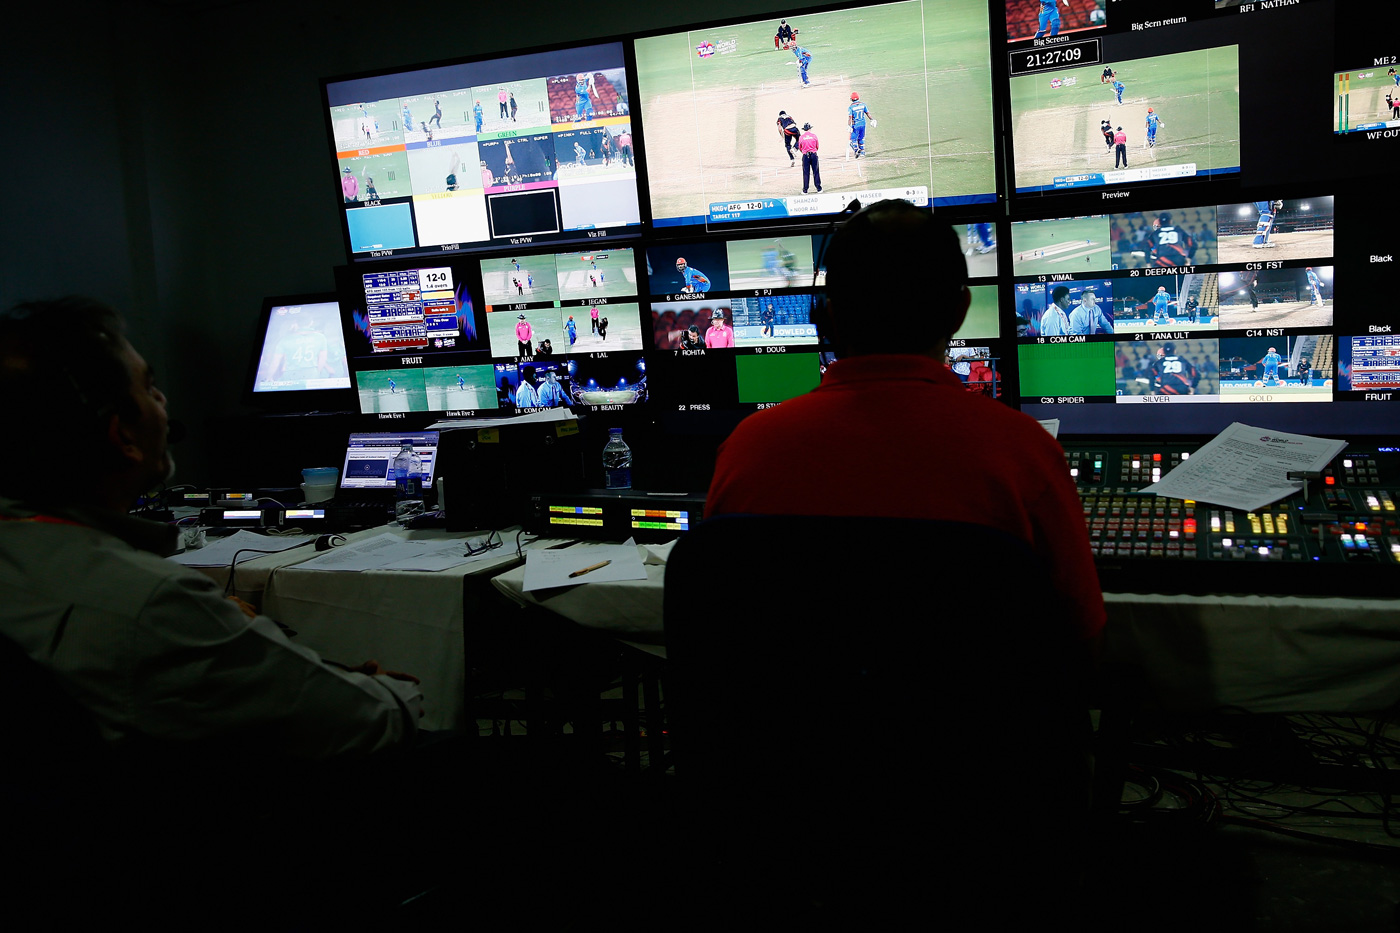 A pooled broadcast deal for overseas rights would help reduce cricket boards' dependency on tours by India, and make it easier for fans to watch neutral series